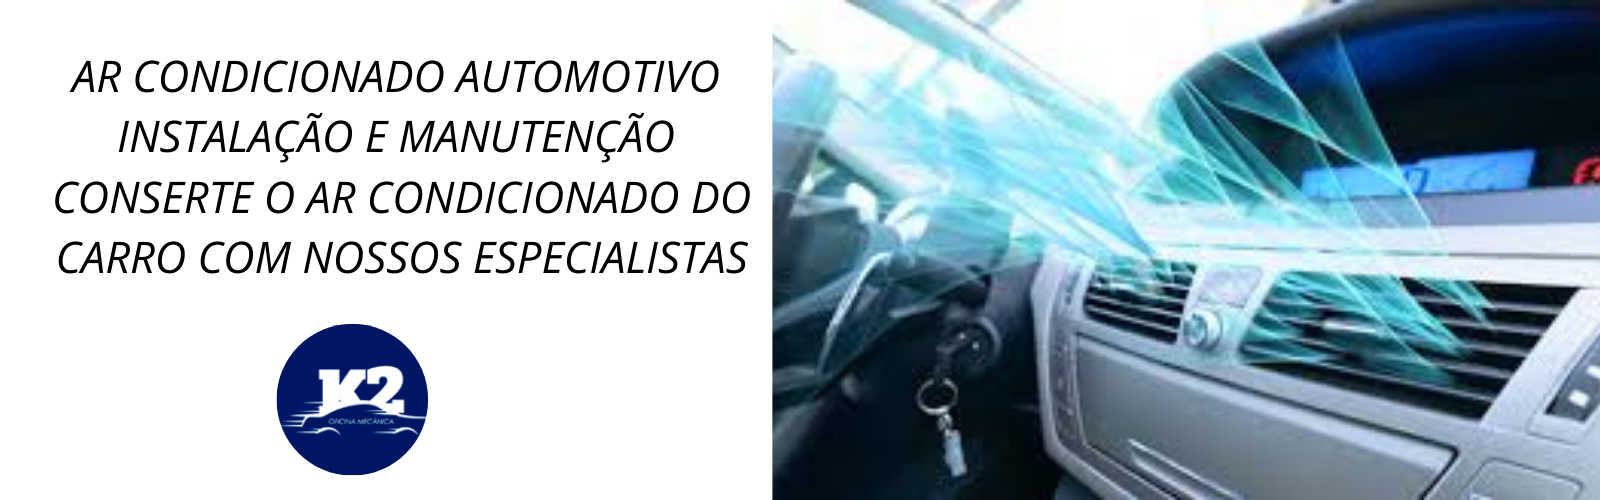 servicos-mecancios-automotivos-sp